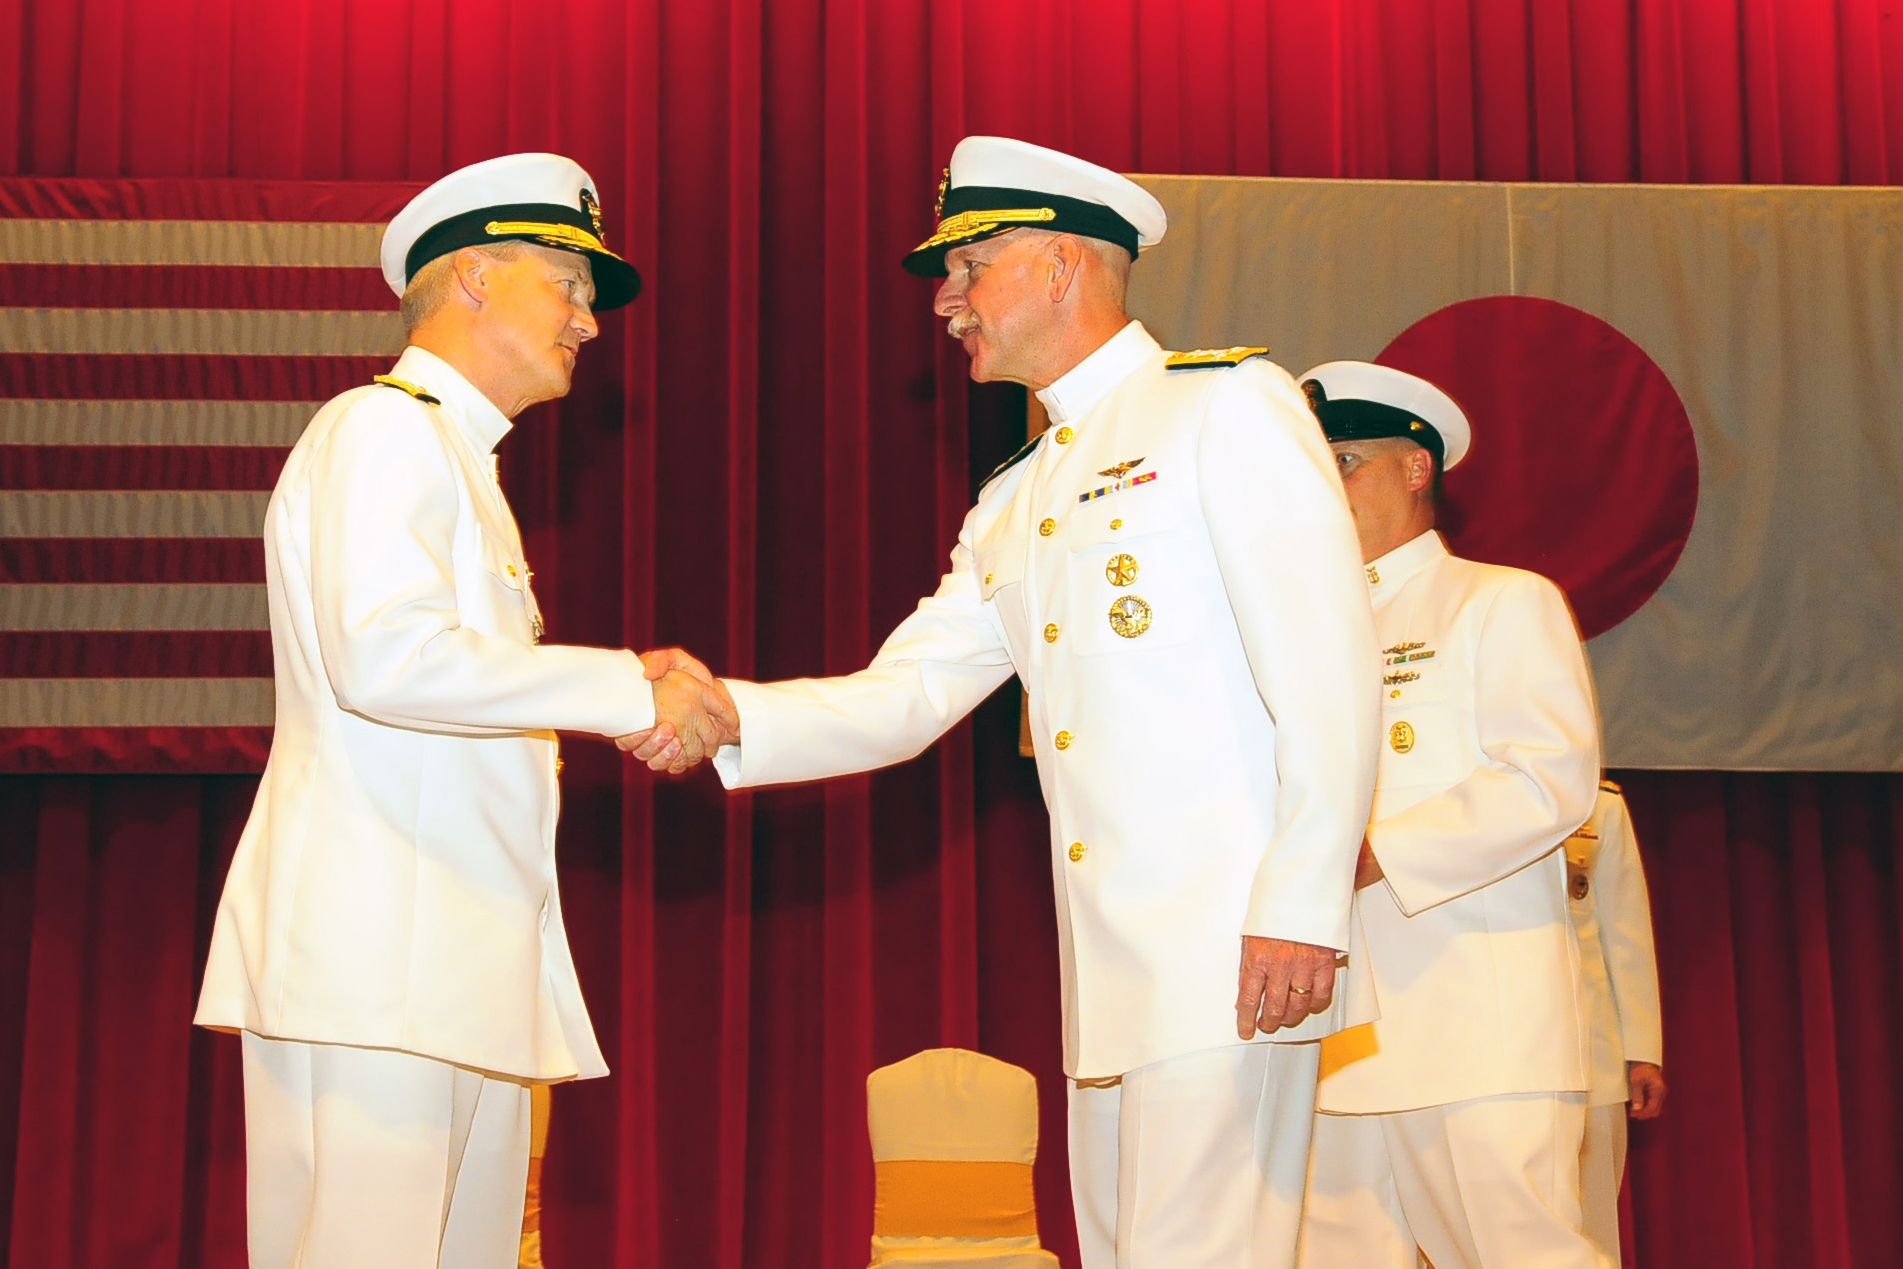 Adm. Scott H. Swift, commander, U.S. Pacific Fleet, congratulates Vice Adm. Robert L. Thomas, commander U.S. 7th Fleet, during a change of command ceremony at Fleet Activities Yokosuka Fleet Theater on Sept. 7, 2015. US Navy photo.